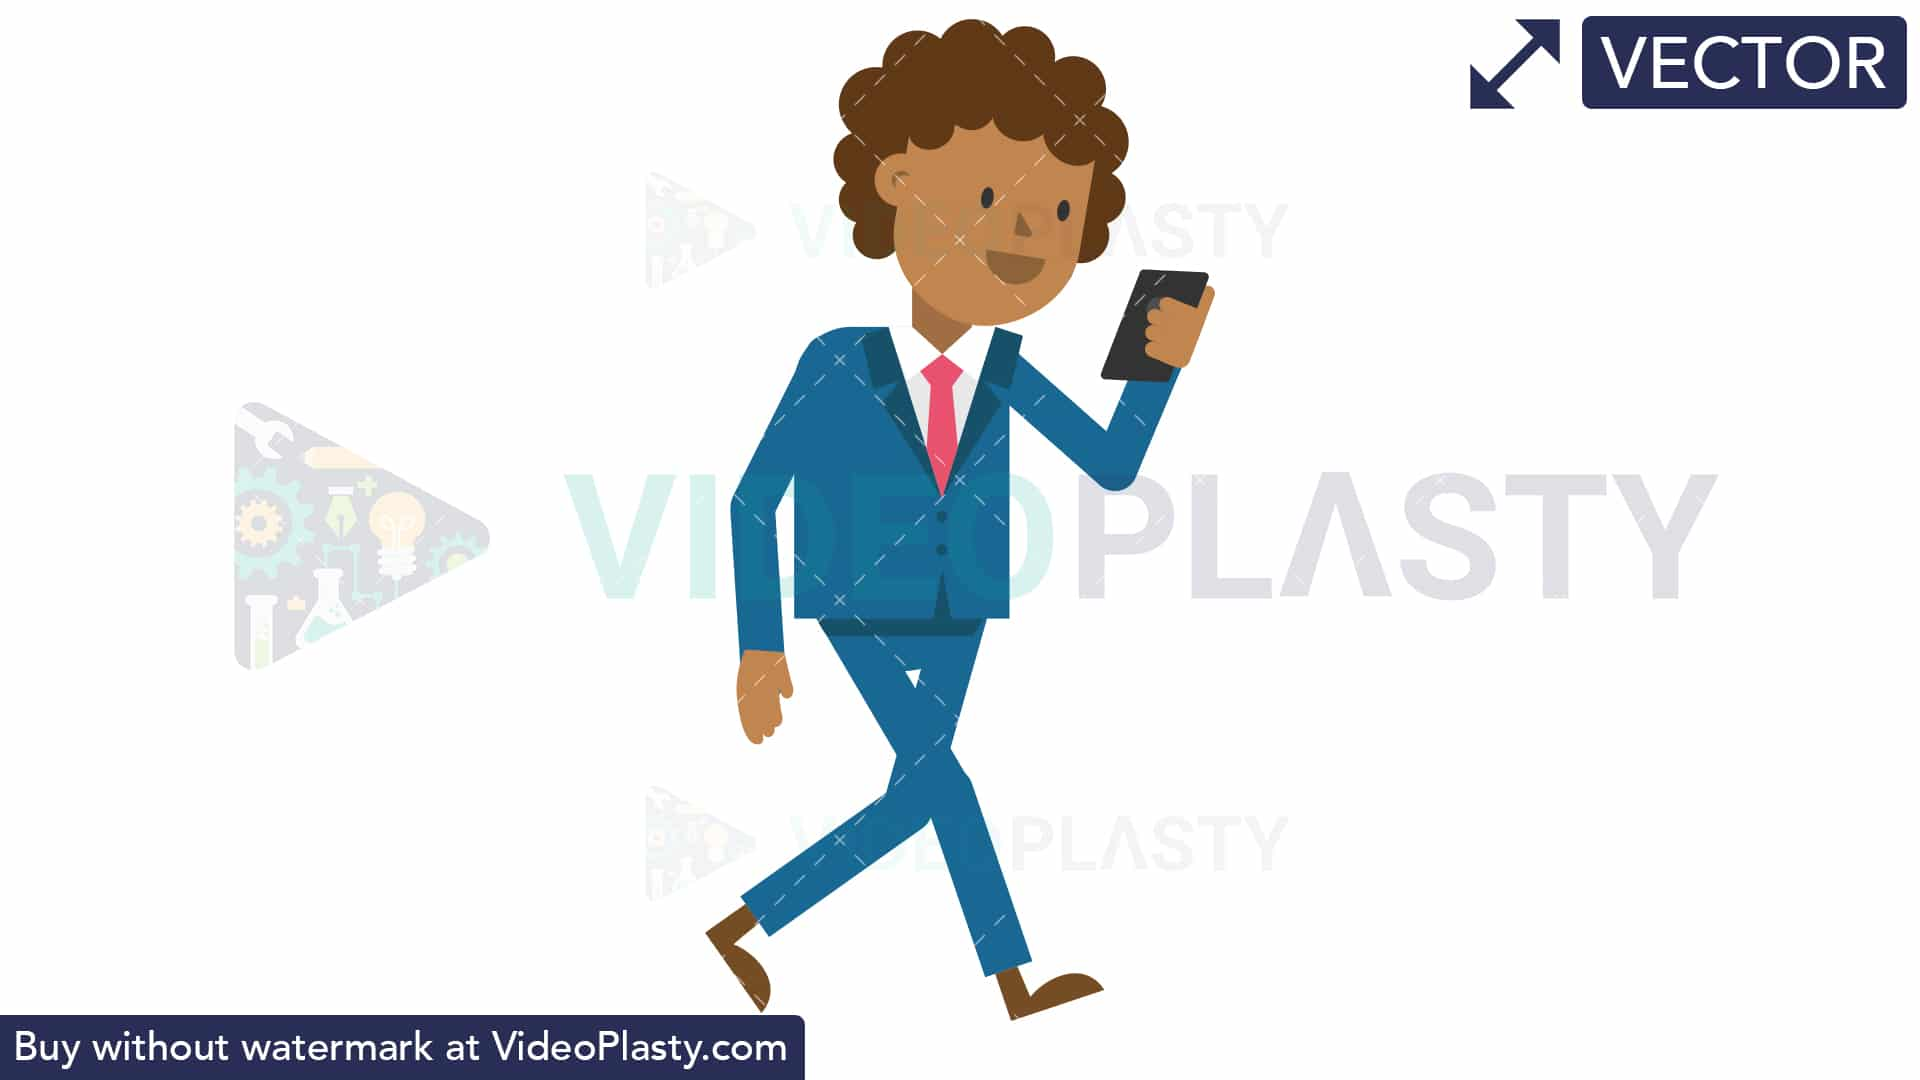 Clipart cell phone man clip art free library Black Corporate Man Walking Looking at His Cellphone [VECTOR] clip art free library